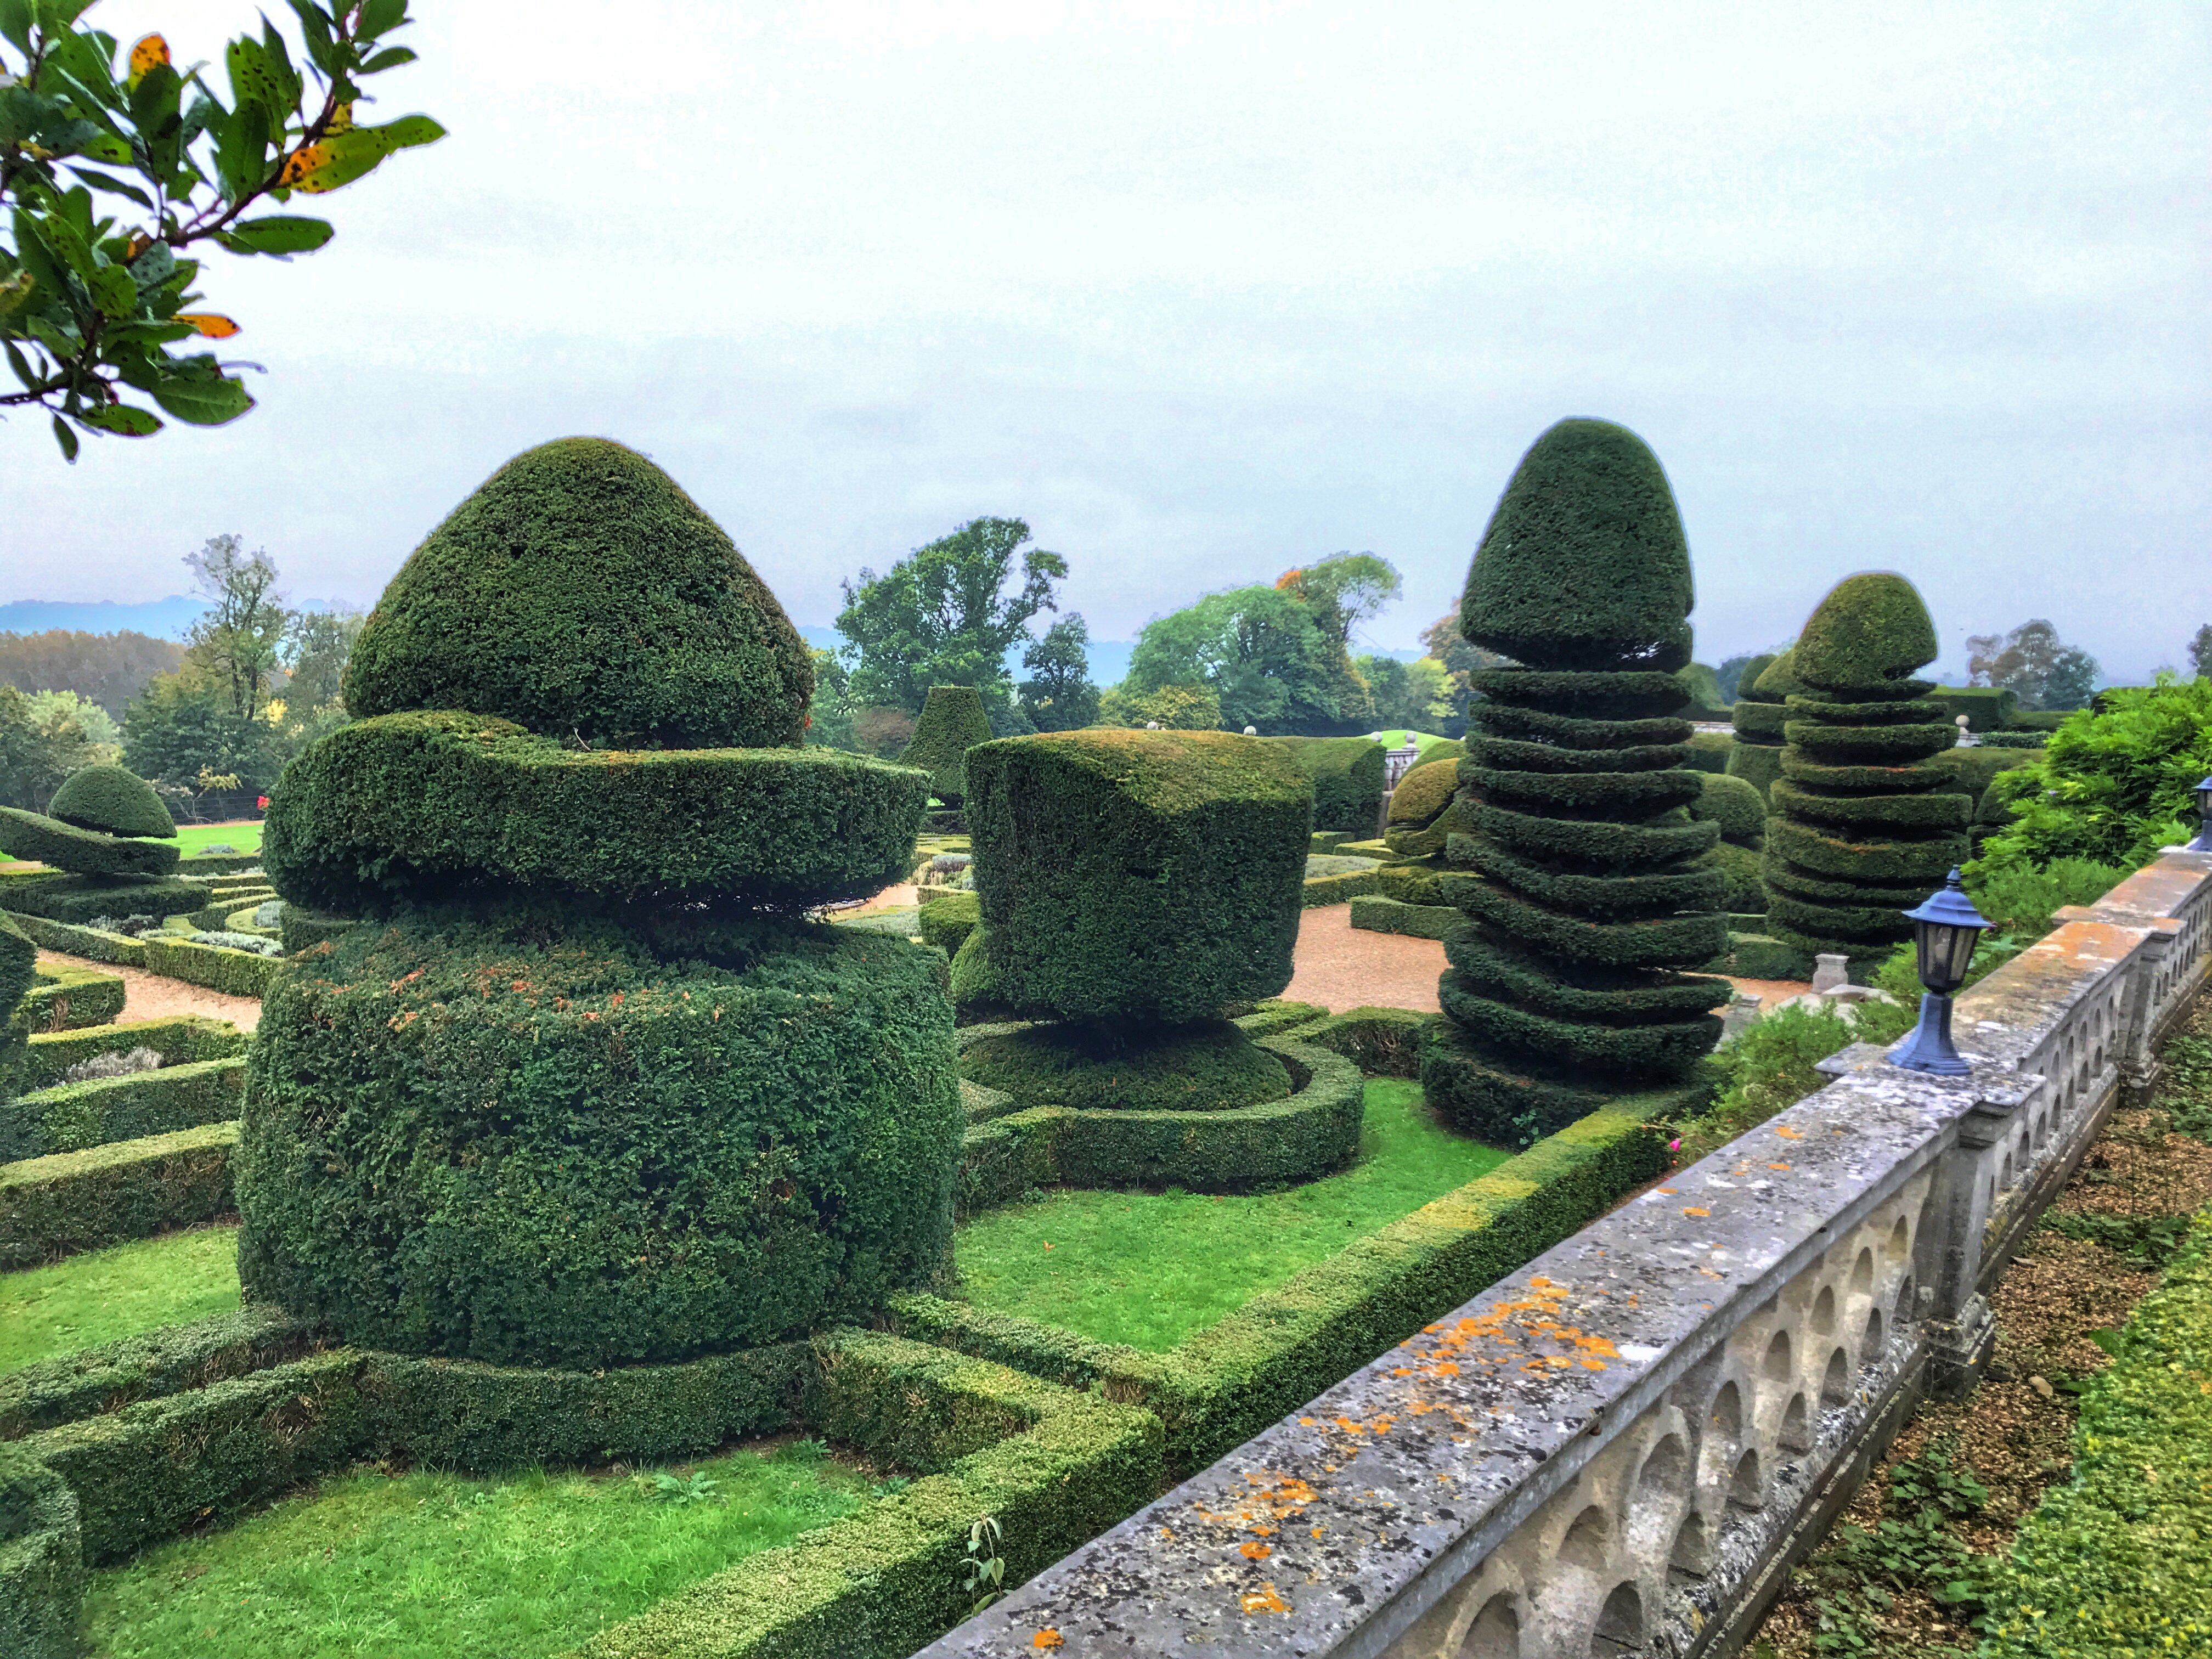 Danesfield House - topiary and gardens